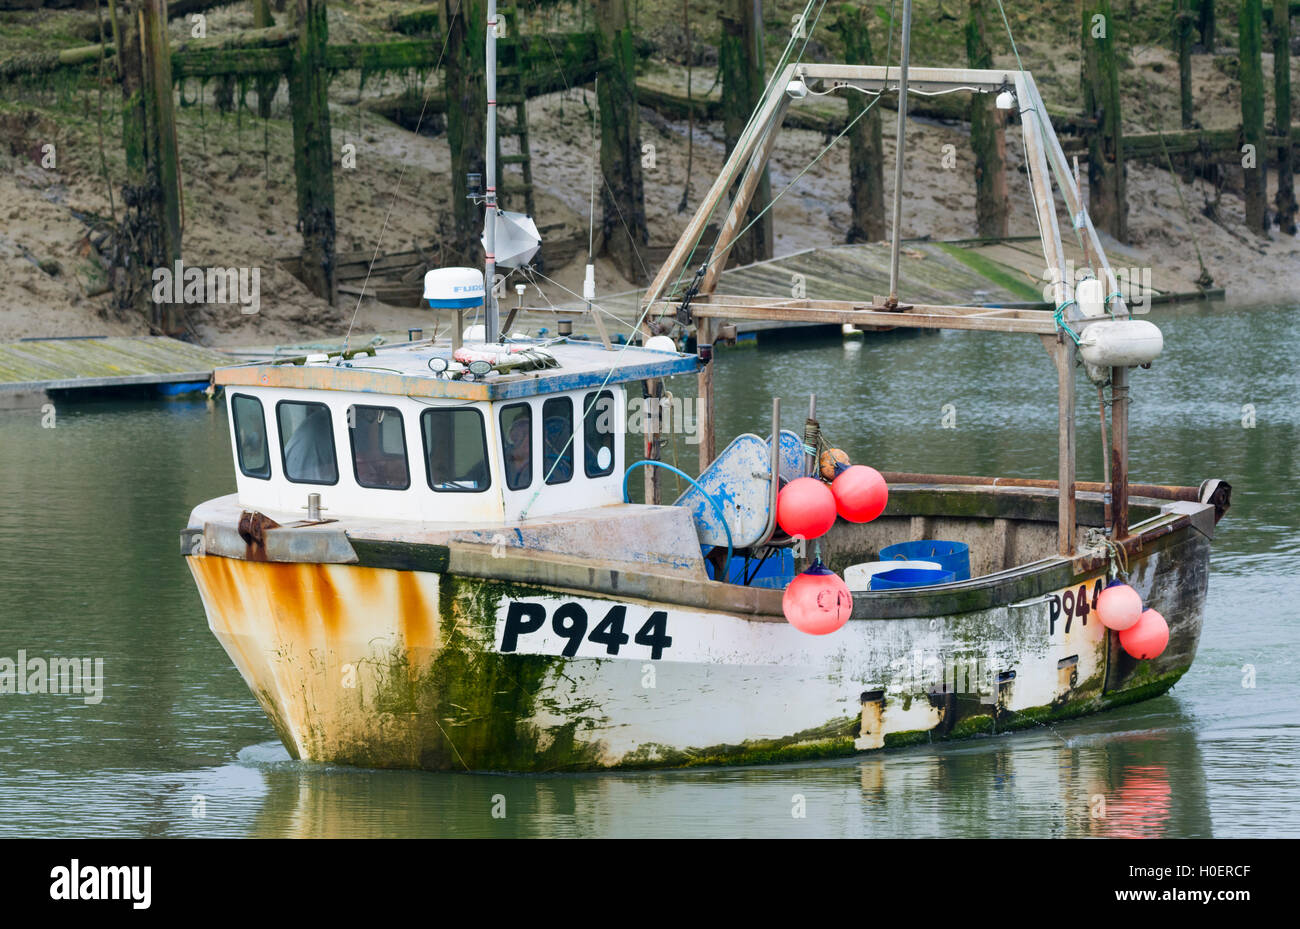 Rusty old fishing boat on a river estuary. - Stock Image